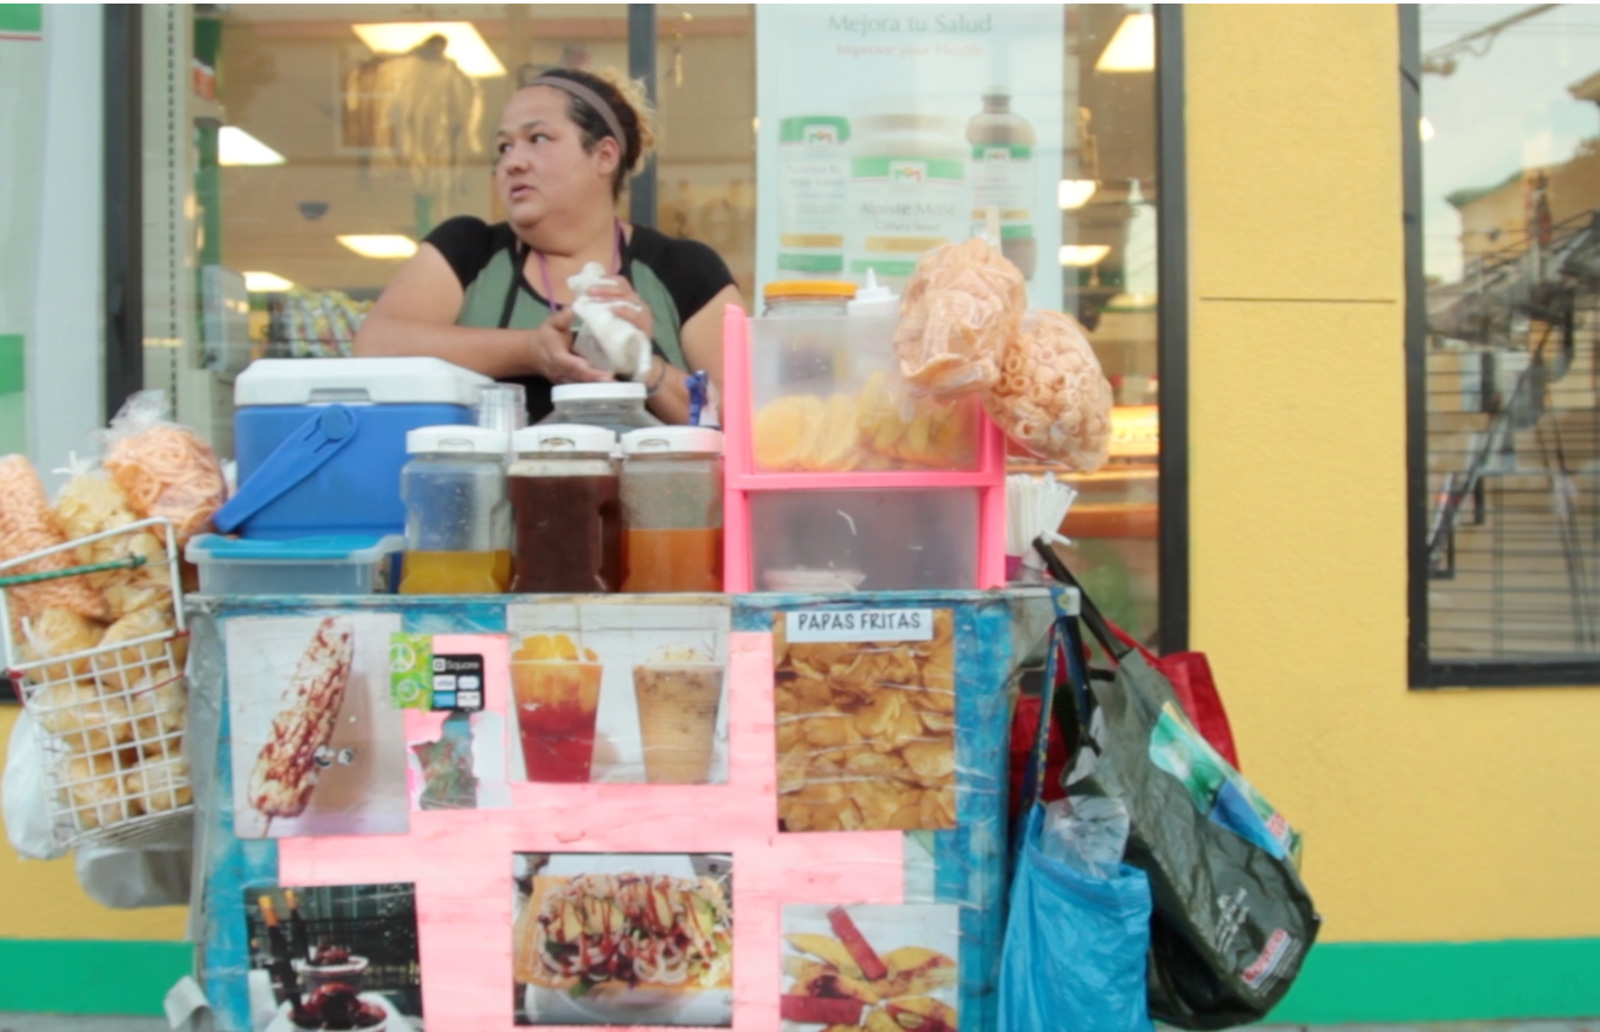 VIDEO: The Lady That Sells The Mangonadas